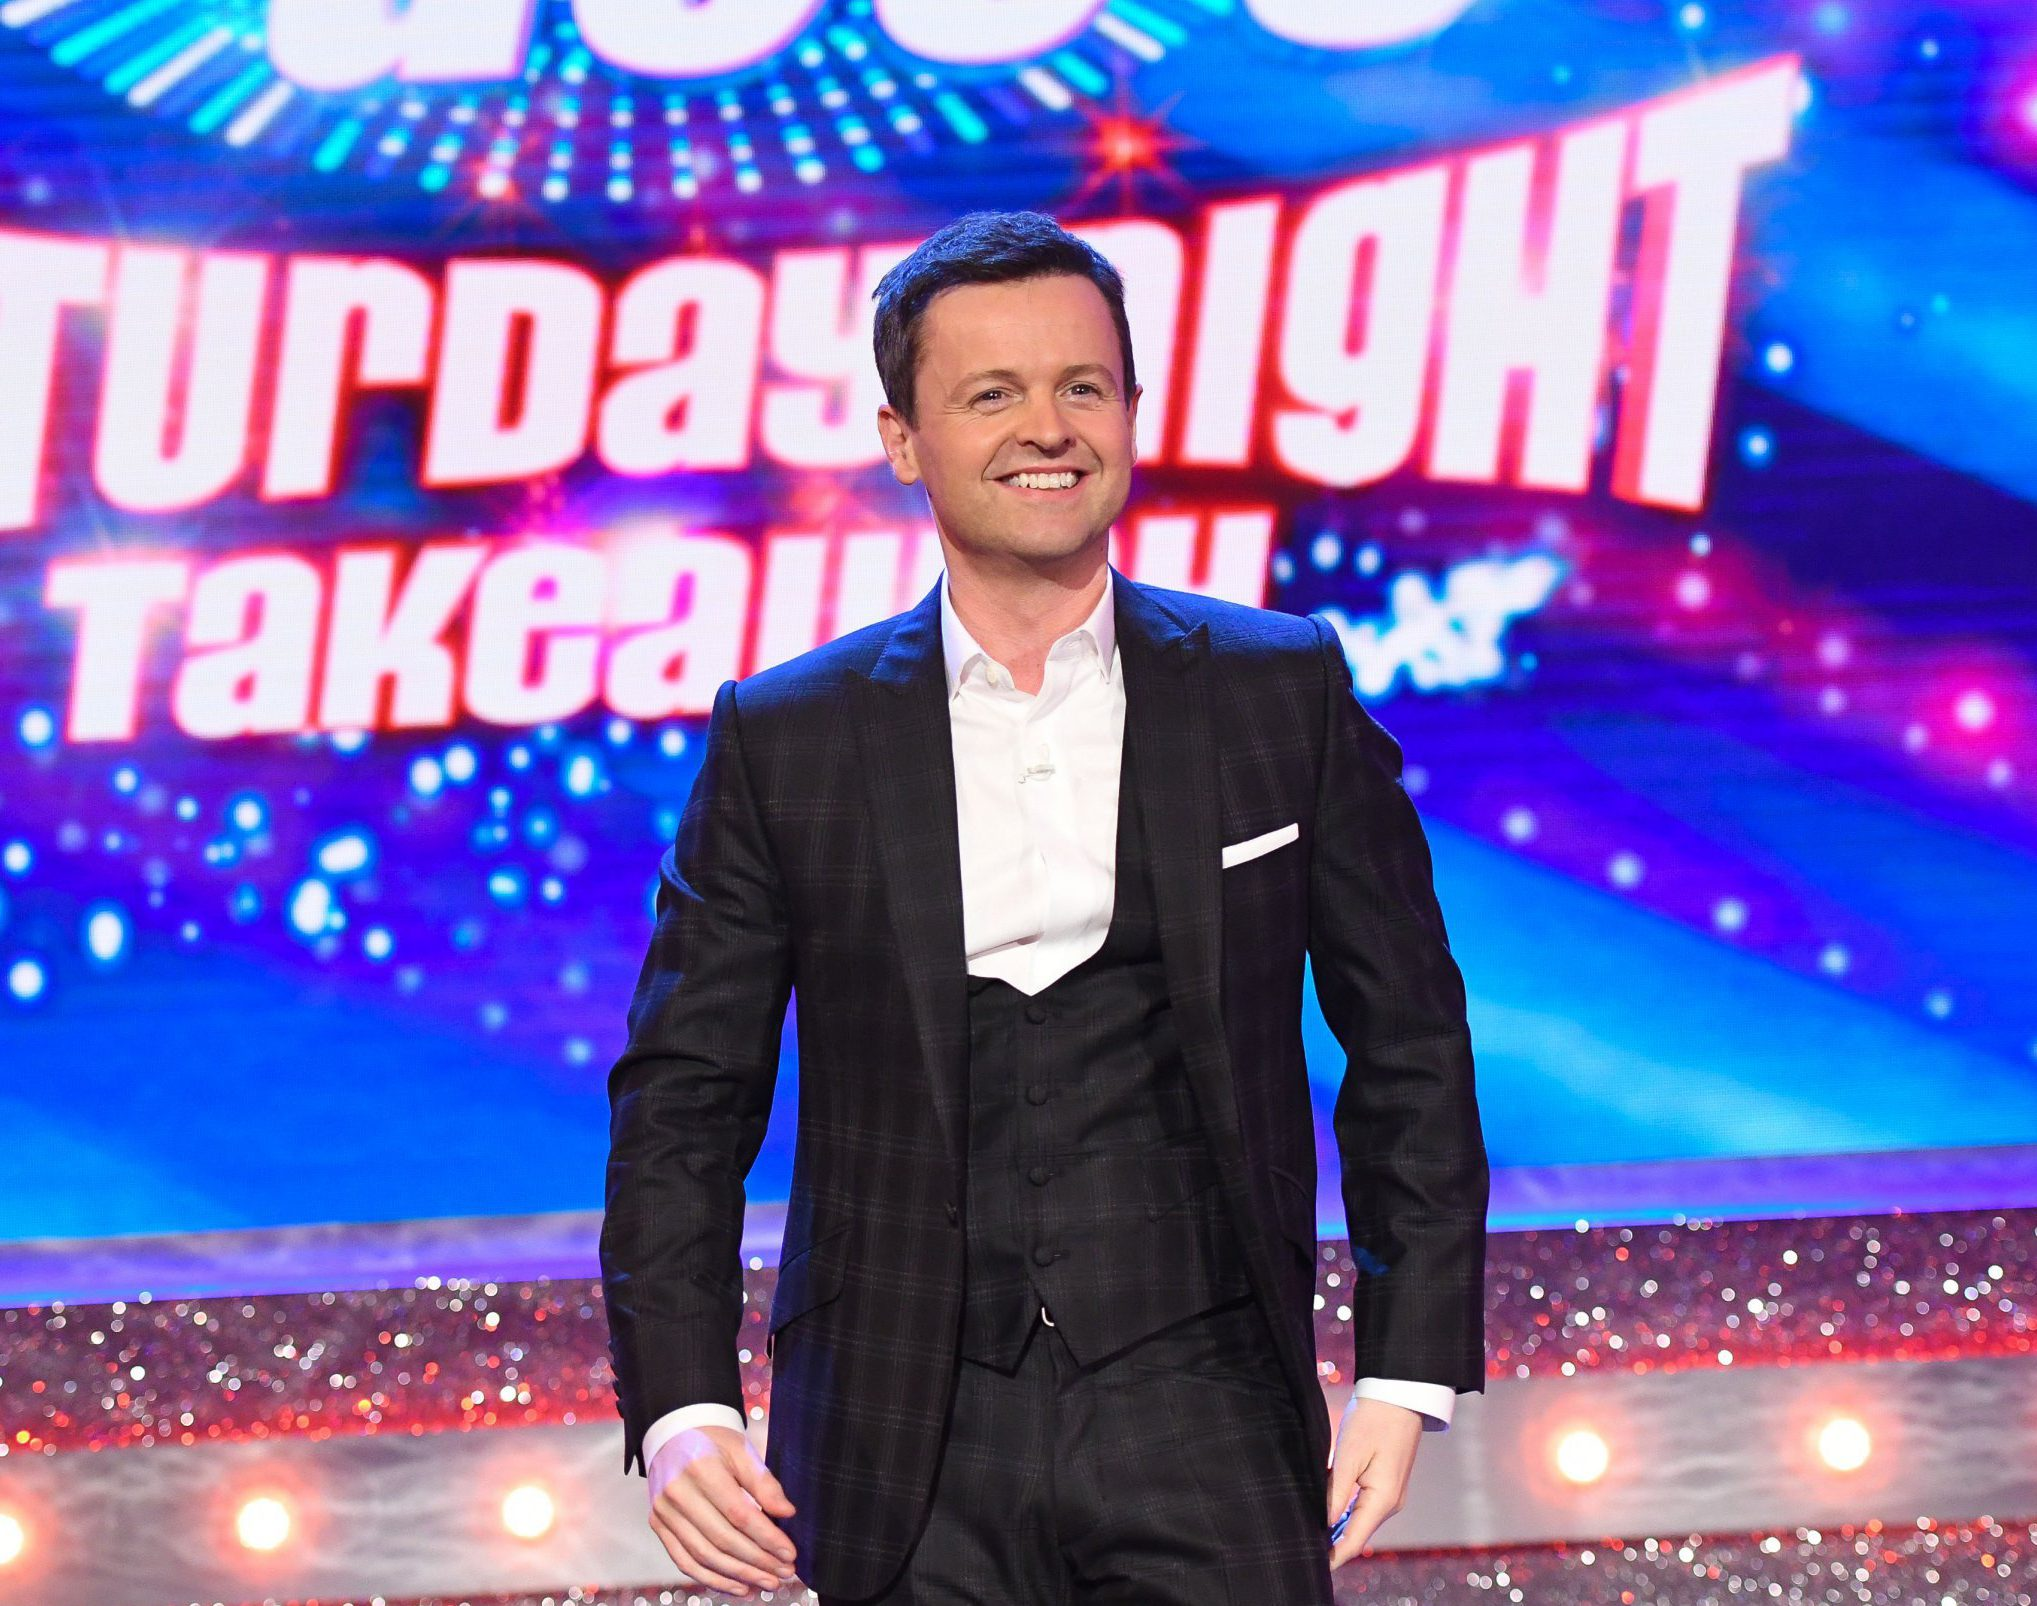 Editorial Use Only. No merchandising Mandatory Credit: Photo by Kieron McCarron/REX/Shutterstock (9485884e) Declan Donnelly Ant & Dec's Saturday Night Takeaway' TV Show, Series 15, Episode 6, London, UK - 31 Mar 2018